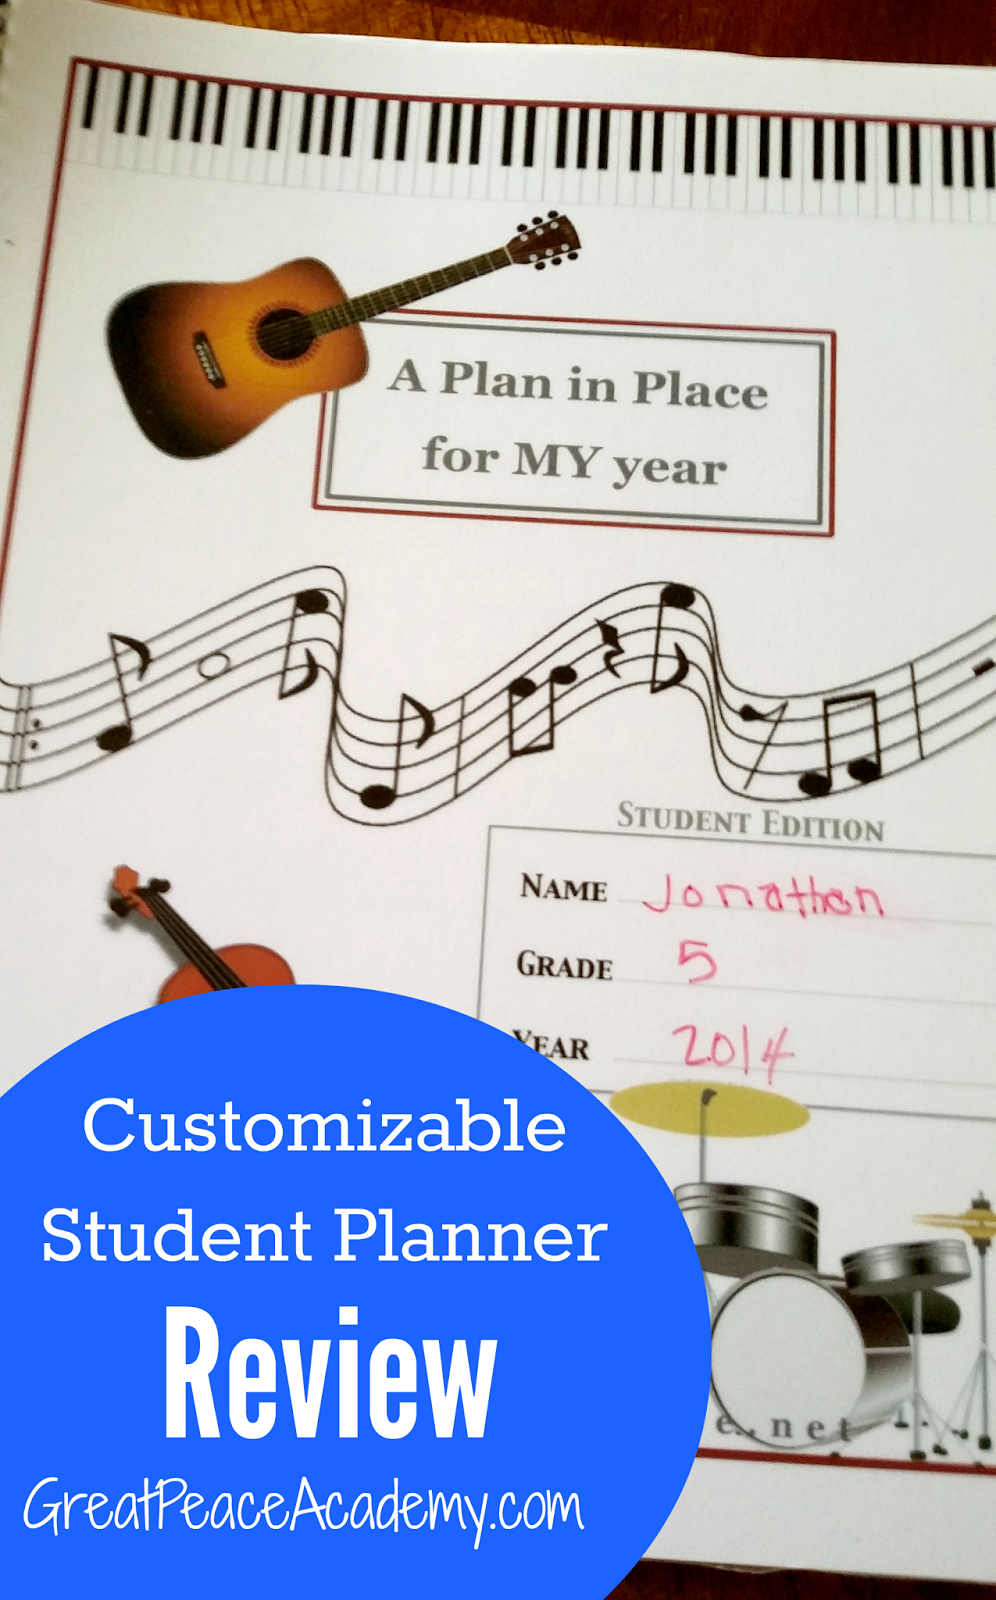 A Plan in Place Customizable Student Planner